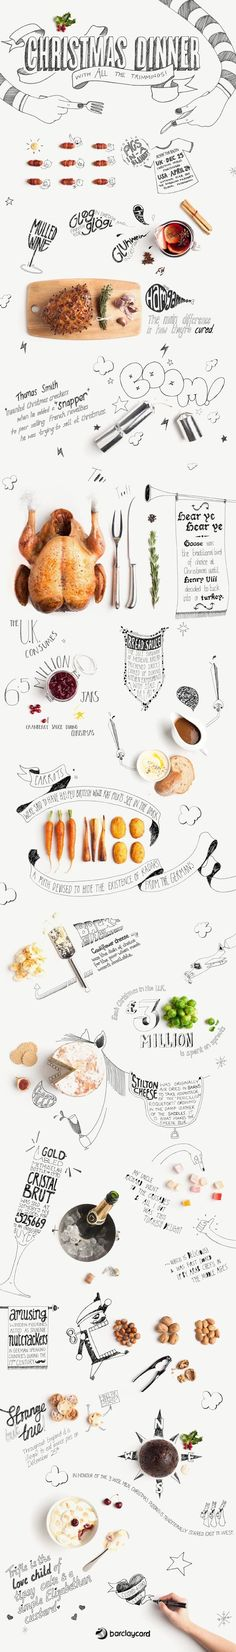 Delicious traditional seasonal eats are highlighted in all their glory accompanied by antic doodles illustrated by Laura Hunter.  Thought up by freelance art director and designer Gonzalo Azores and senior creative at LBI London, Maria Vidal, they created this animated feast in collaboration with Barclaycard.